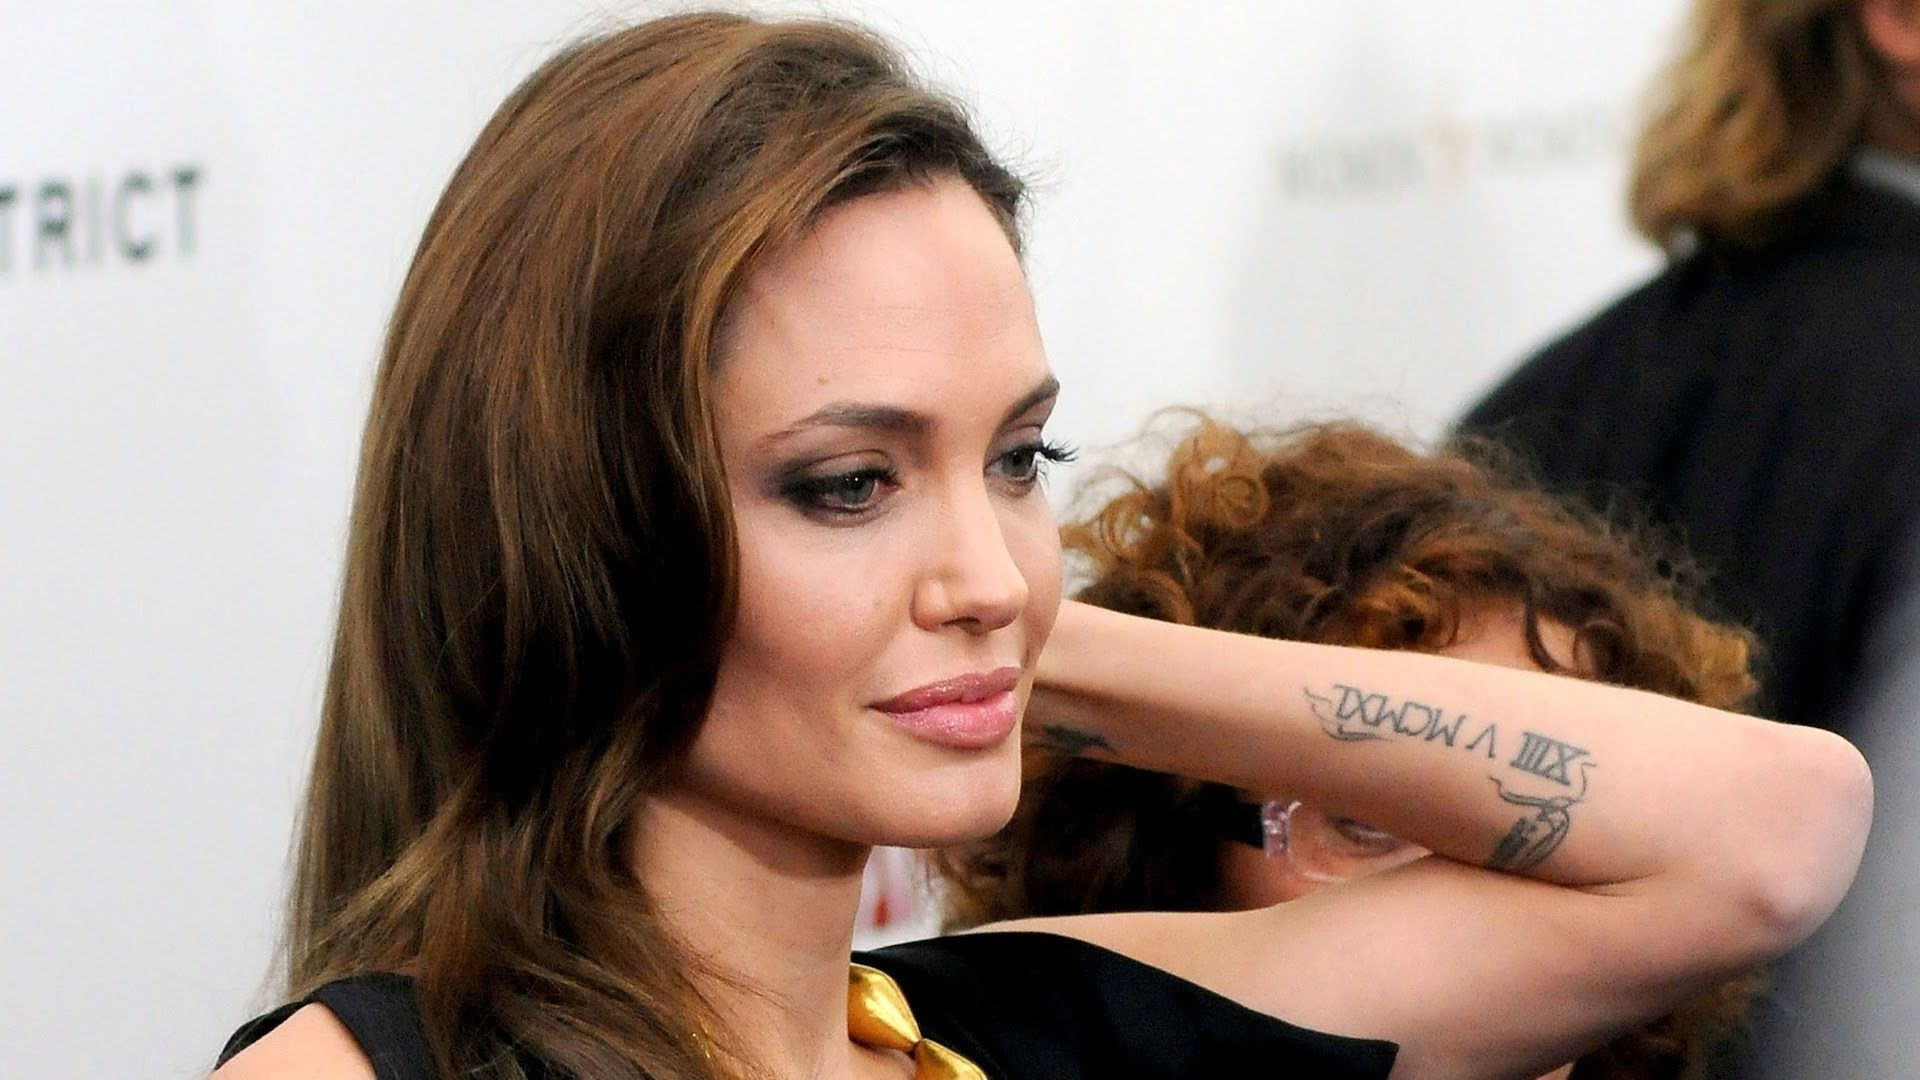 Sacred Fearless Angelina Jolie Tattoo Designs And Meaning Check More intended for size 1920 X 1080